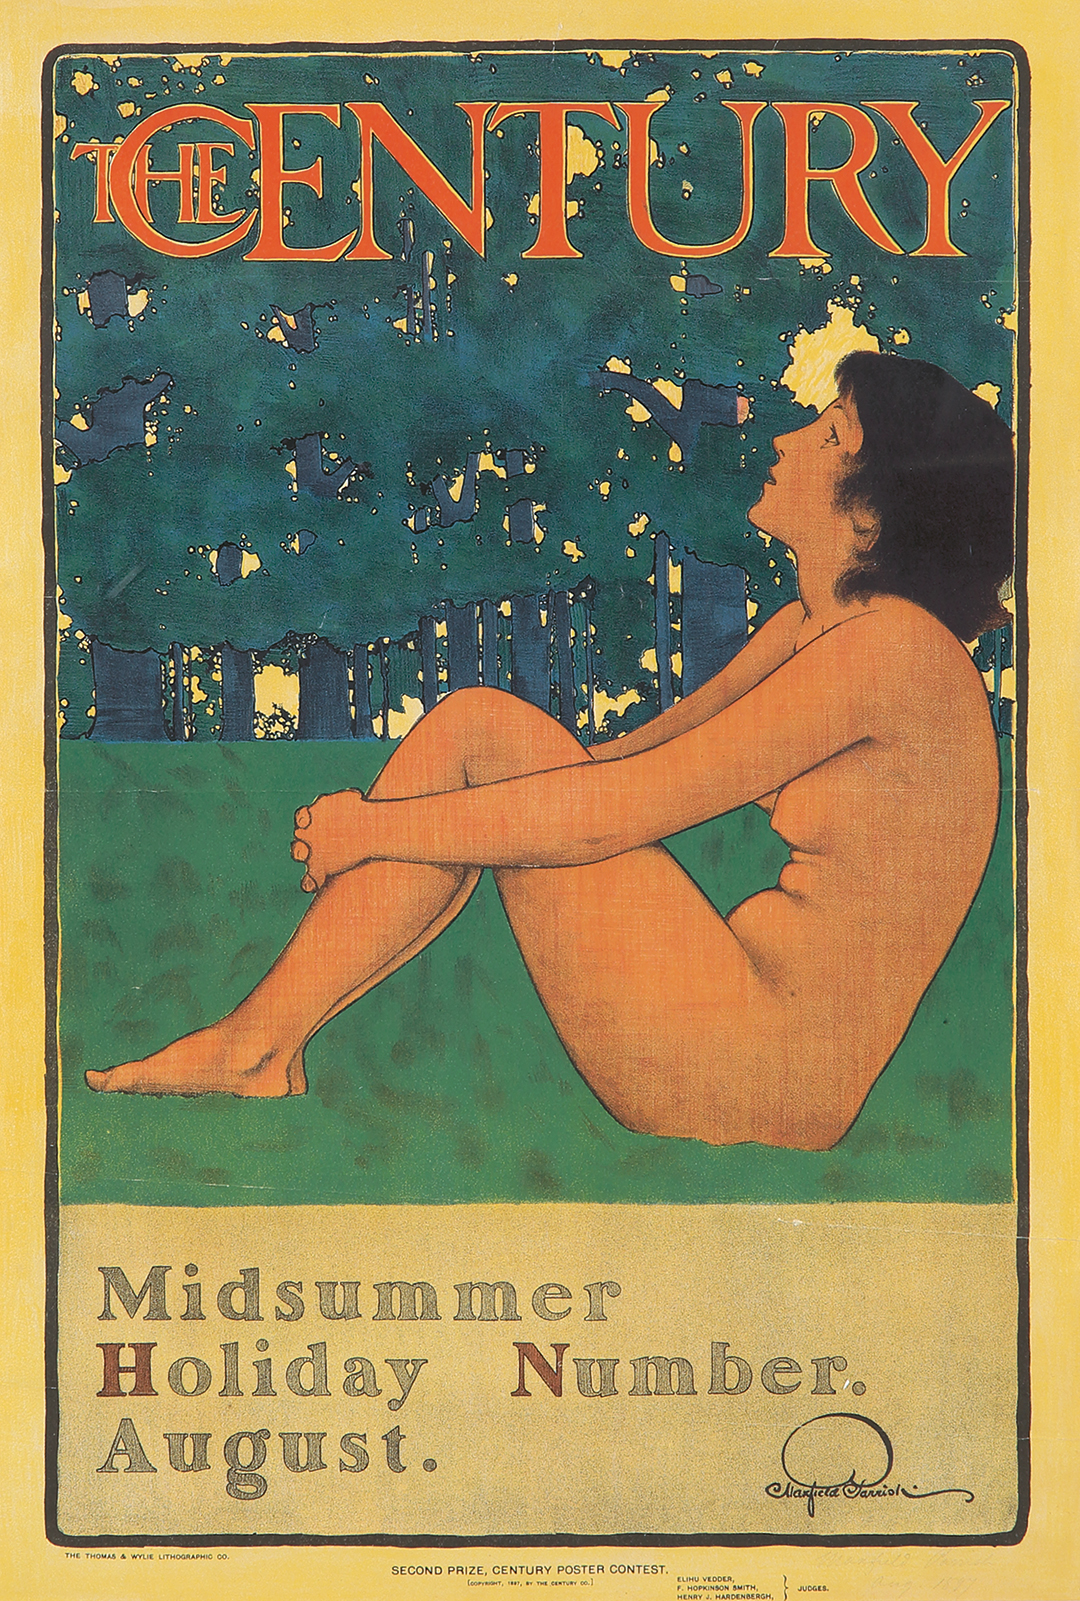 326. The Century / Midsummer Holiday Number. 1897.